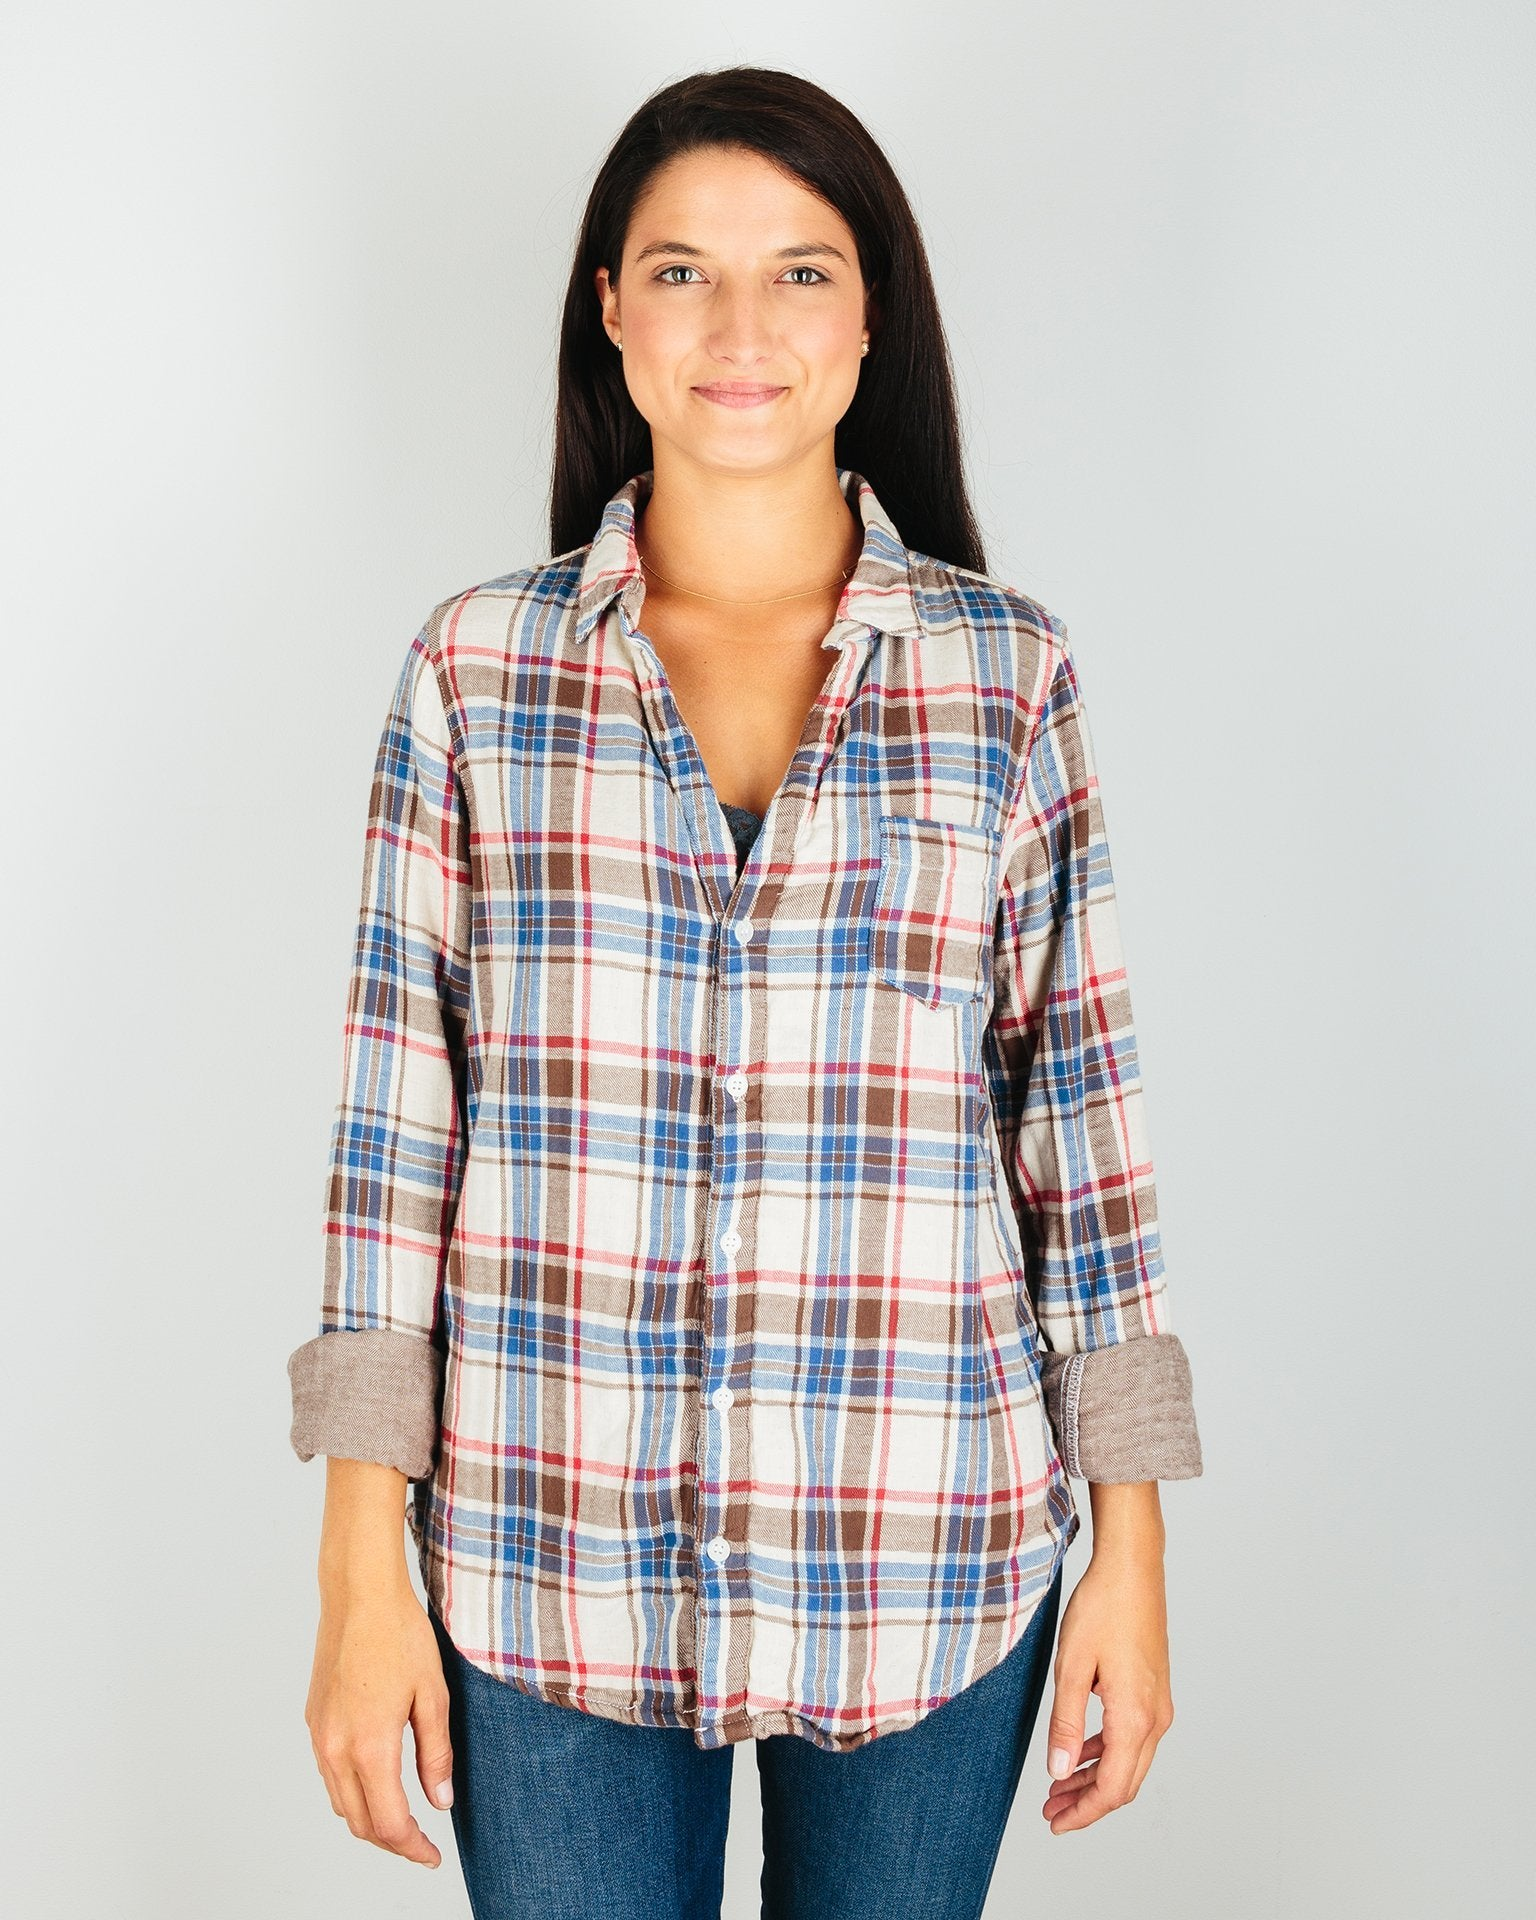 CP Shades Clothing Red & Brown Plaid / XS Sloane Blouse in Red & Brown Plaid